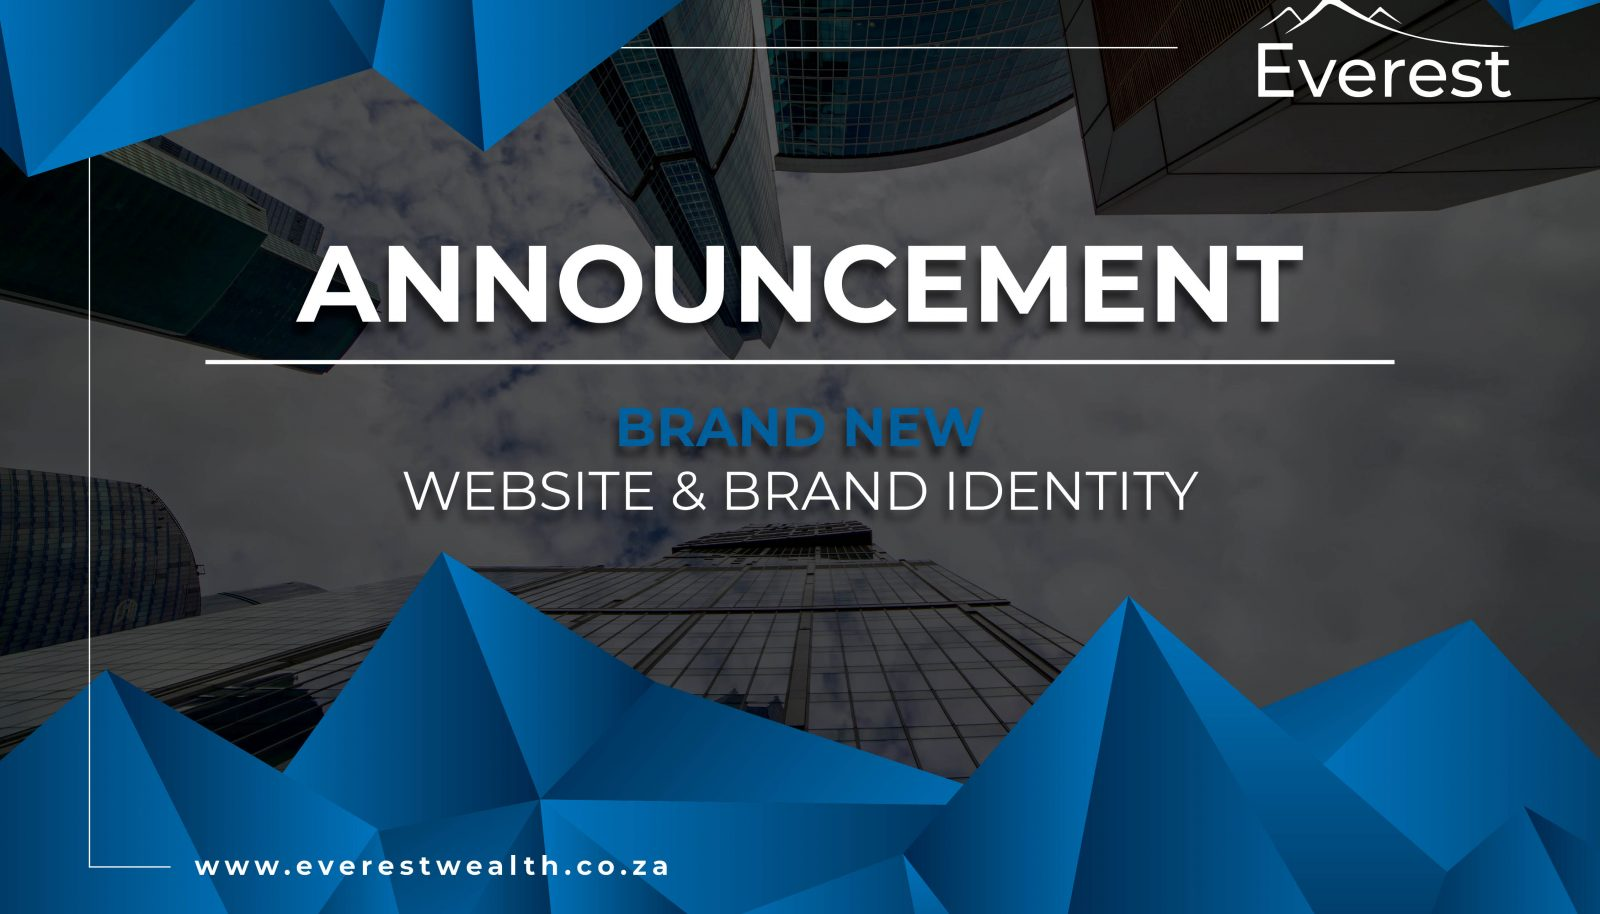 Announcement of New Website and Brand Identity